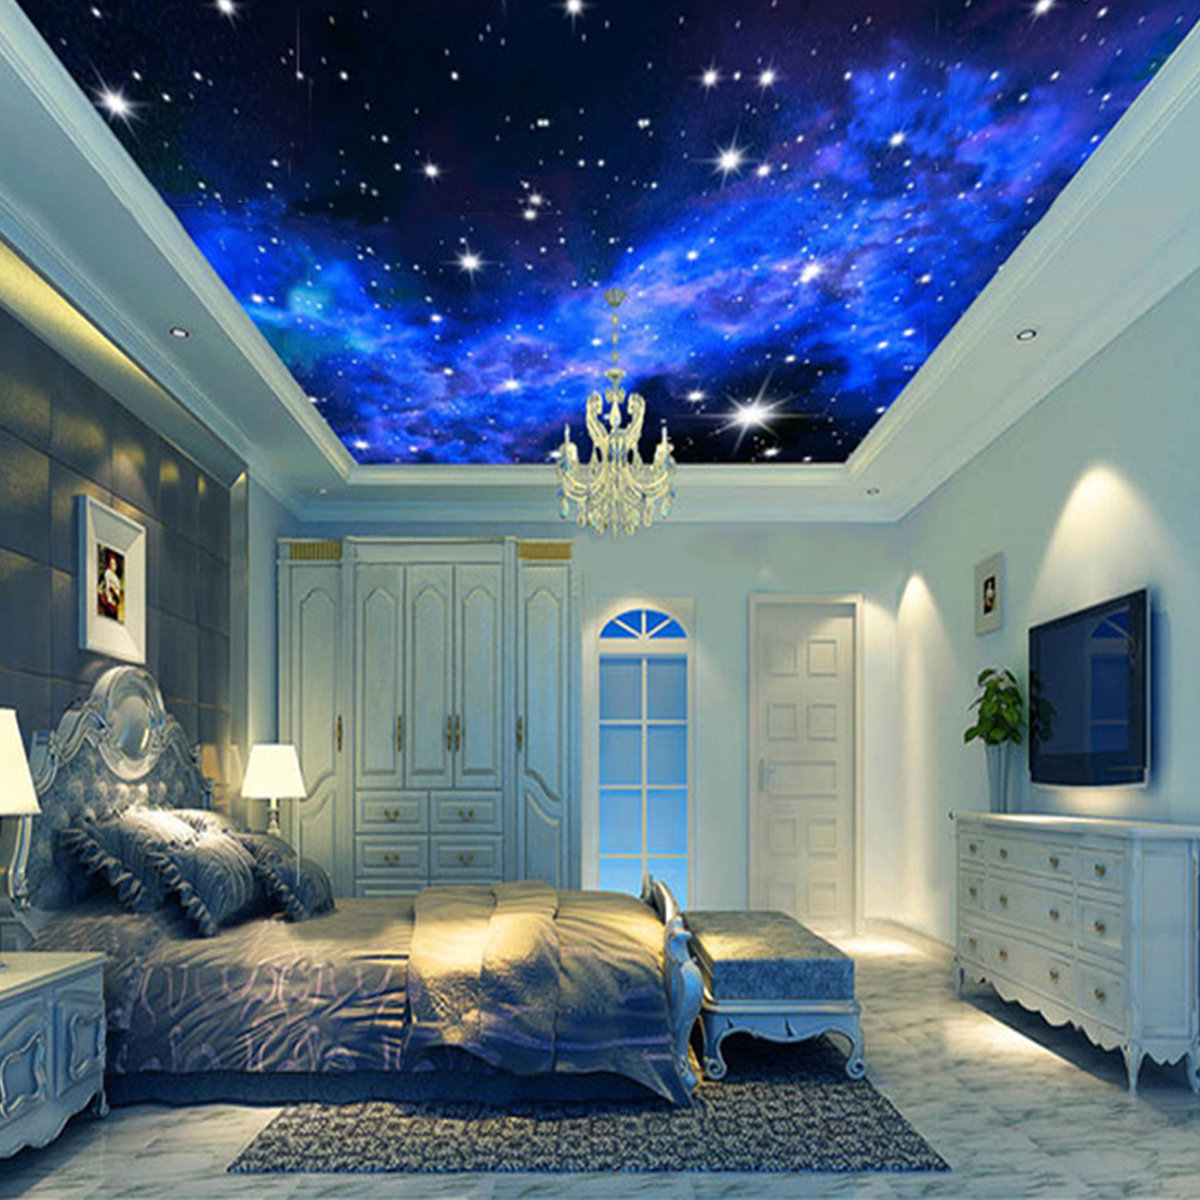 3d wallpaper mural night clouds star sky wall paper for 3d wallpapers for home interiors